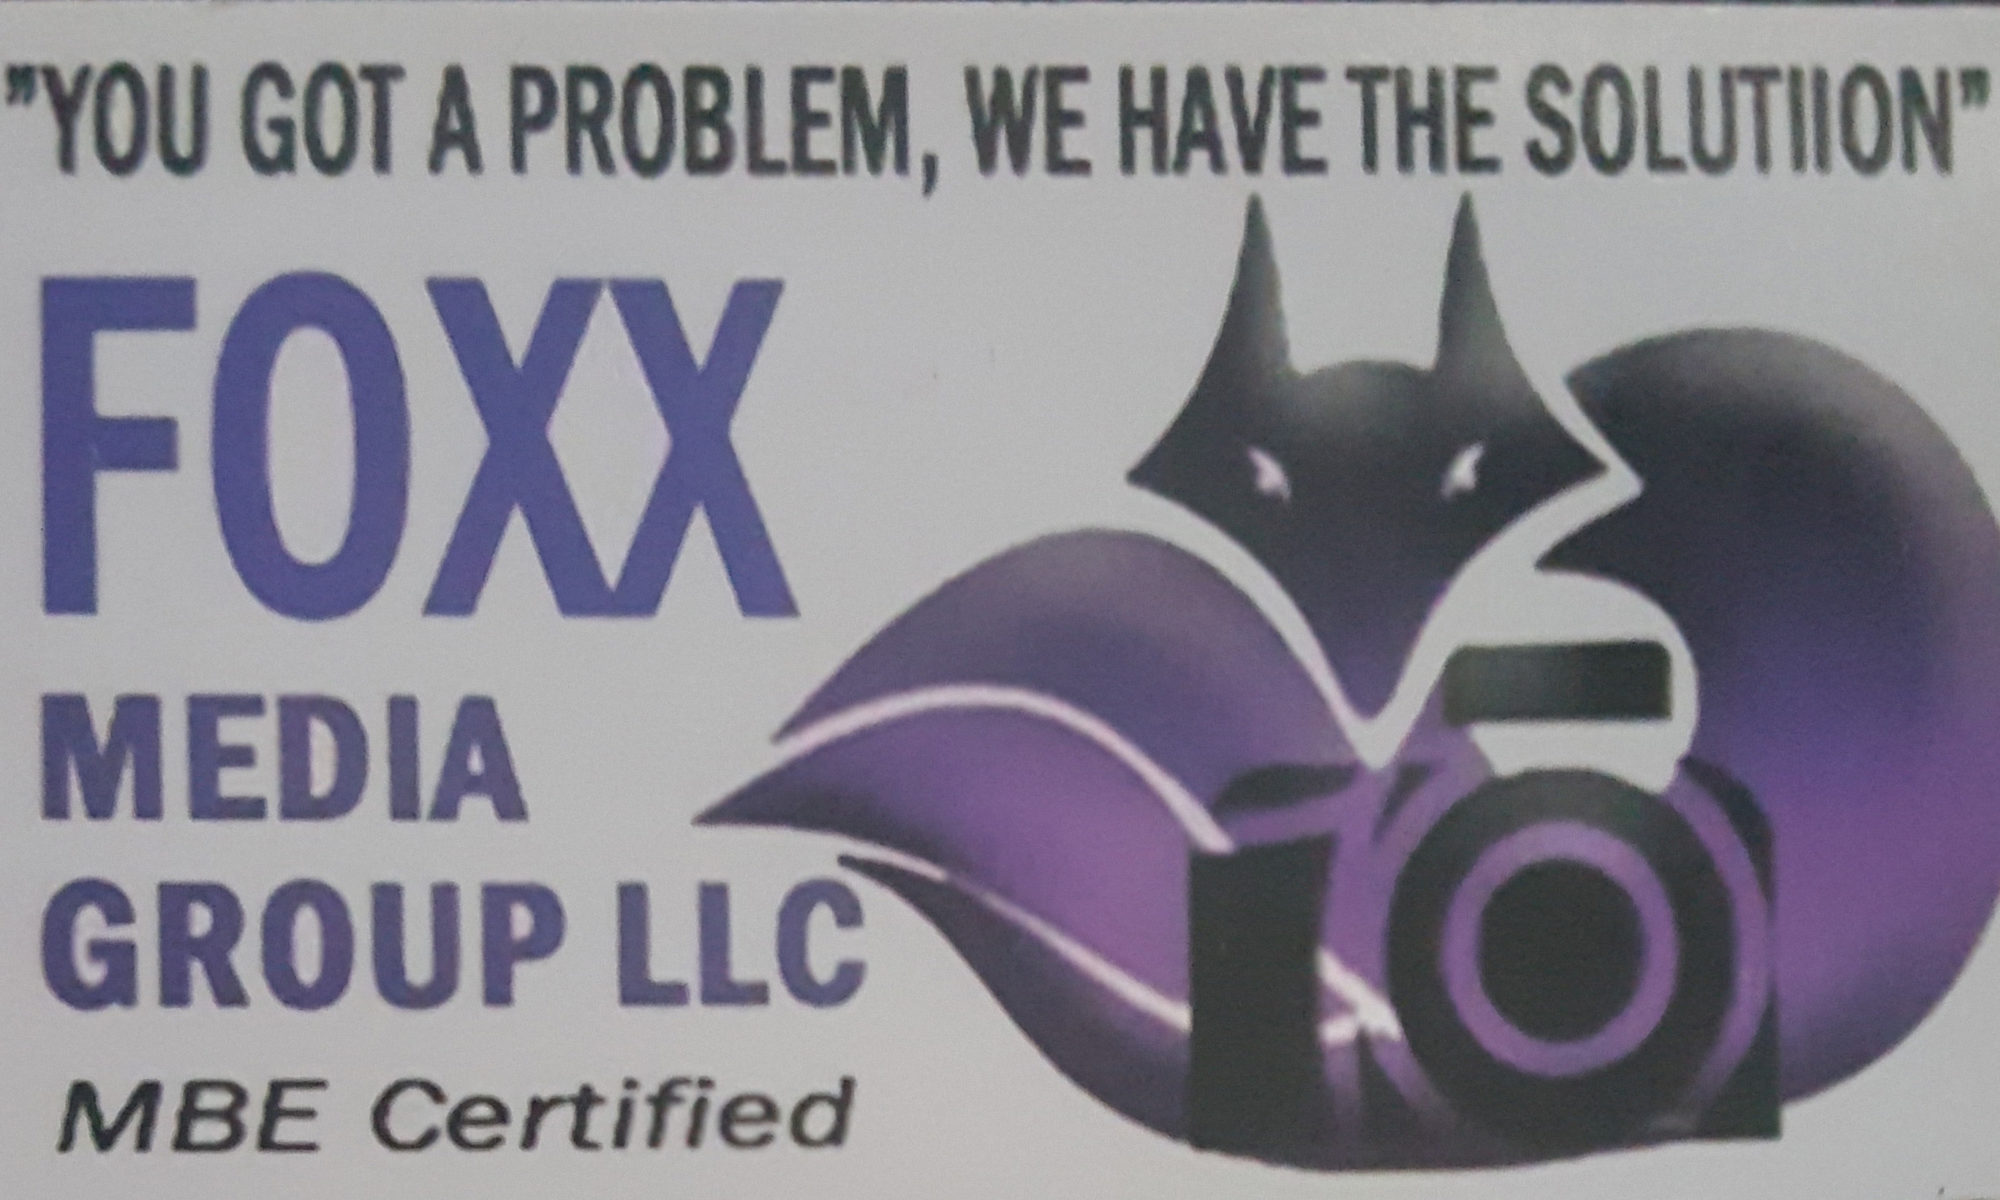 iFoxx Media Group, LLC